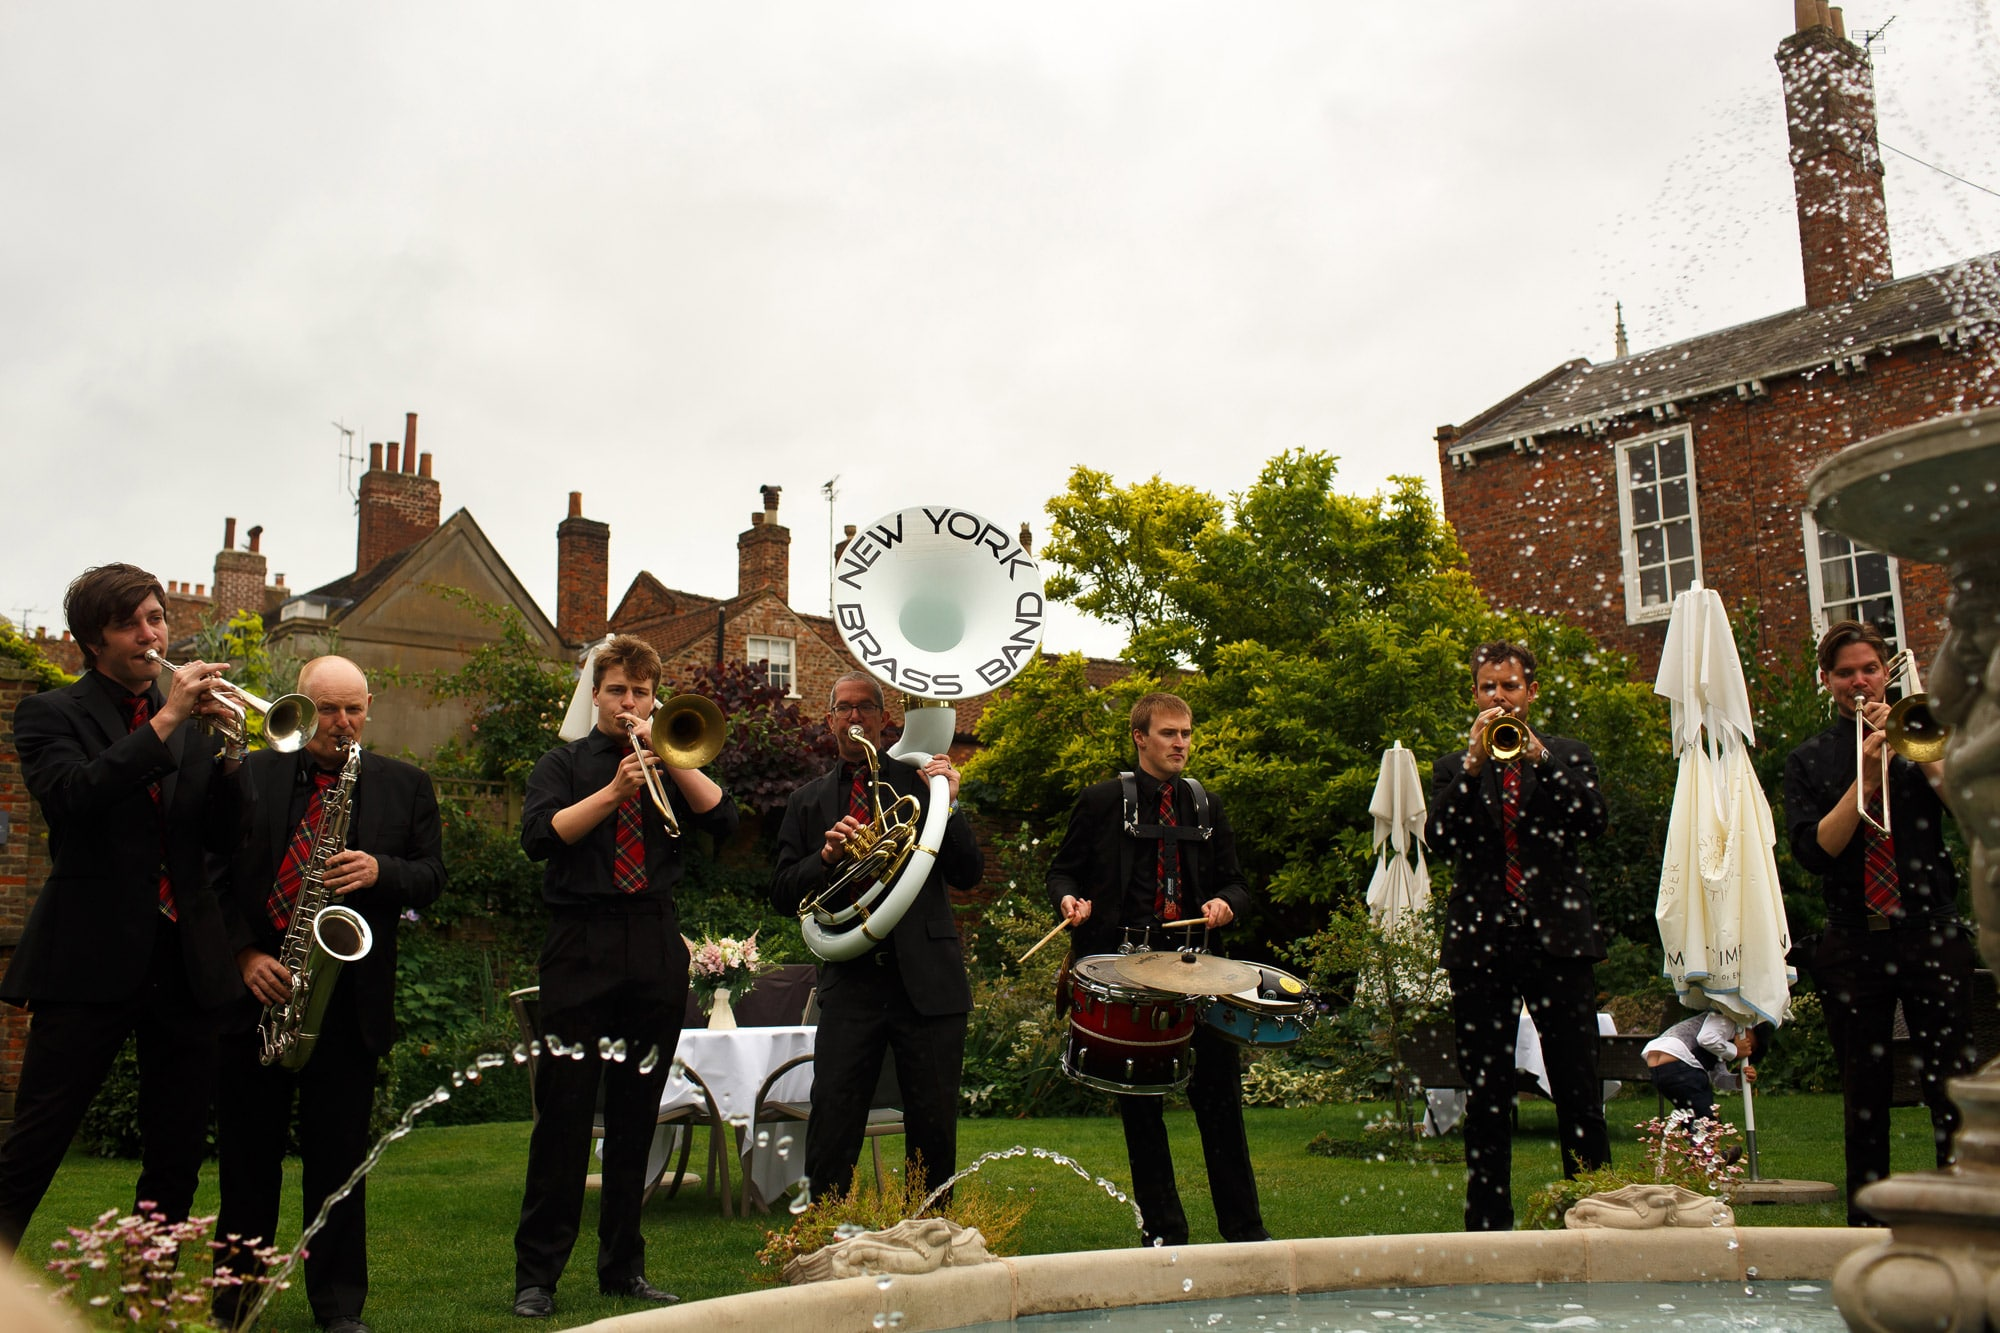 New York Brass Band playing after wedding ceremony in walled garden at grays court wedding